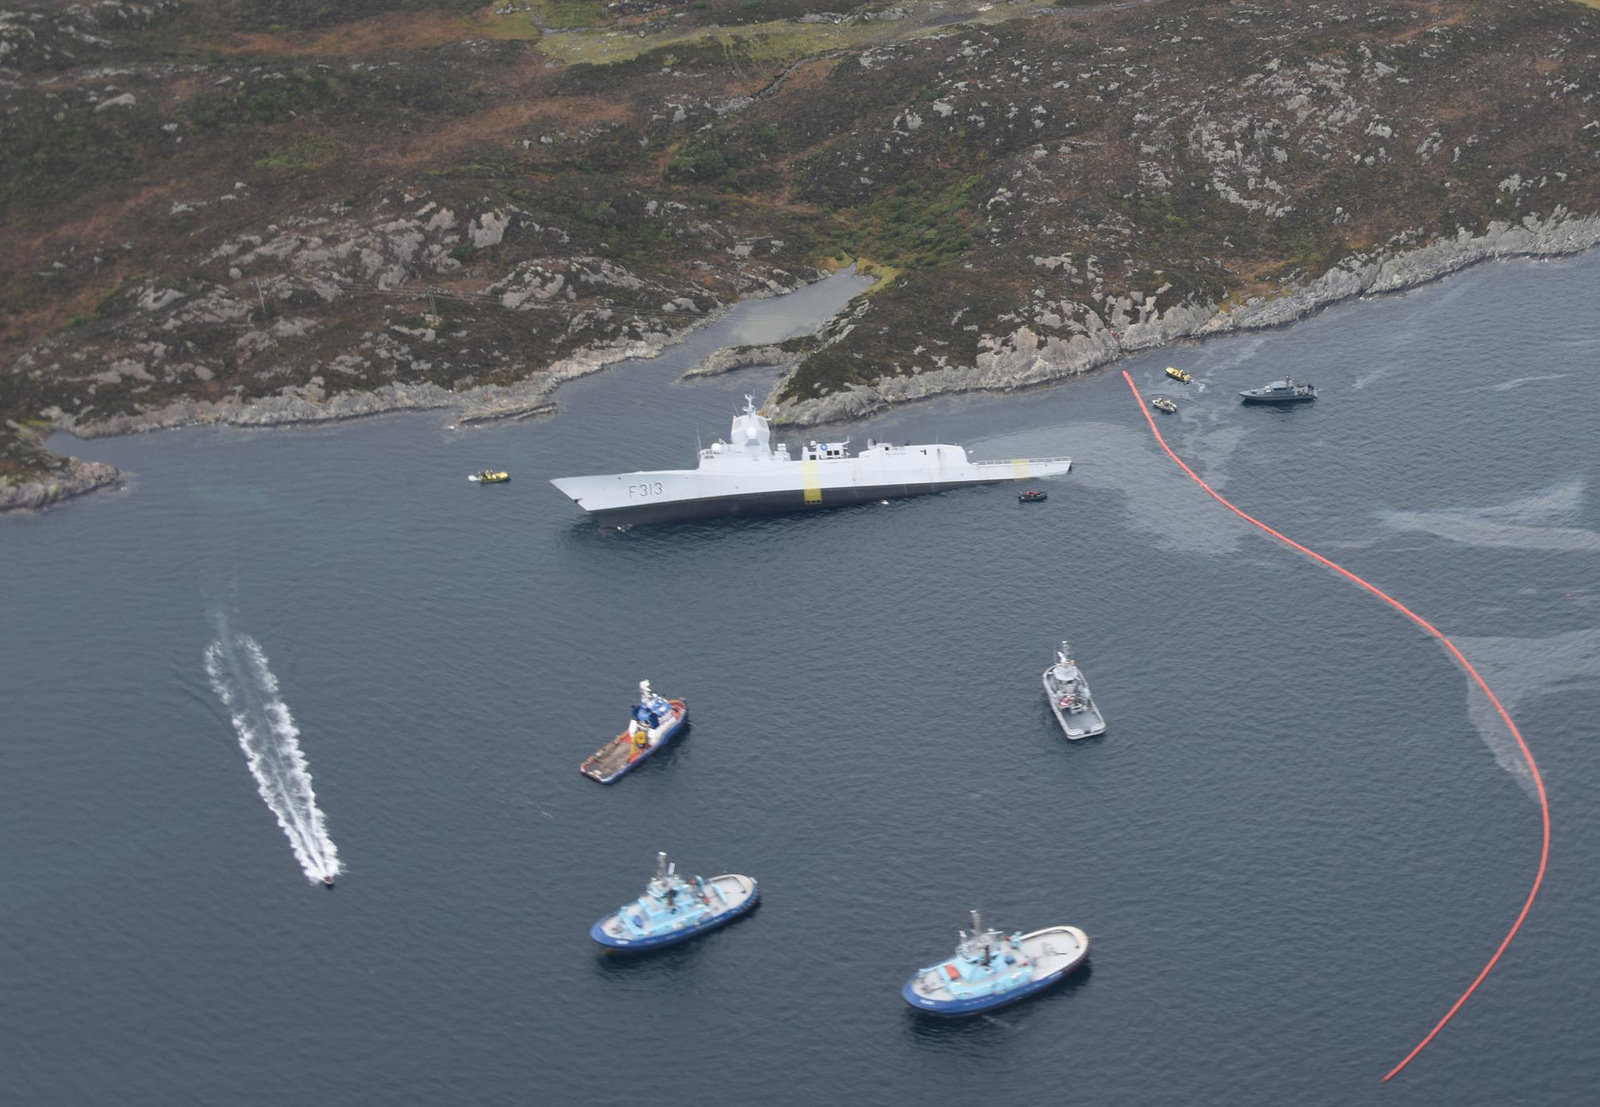 The Helge Ingstad sank after its collision in November with the Sola TS tanker. Pic: Norwegian Coastal Administration